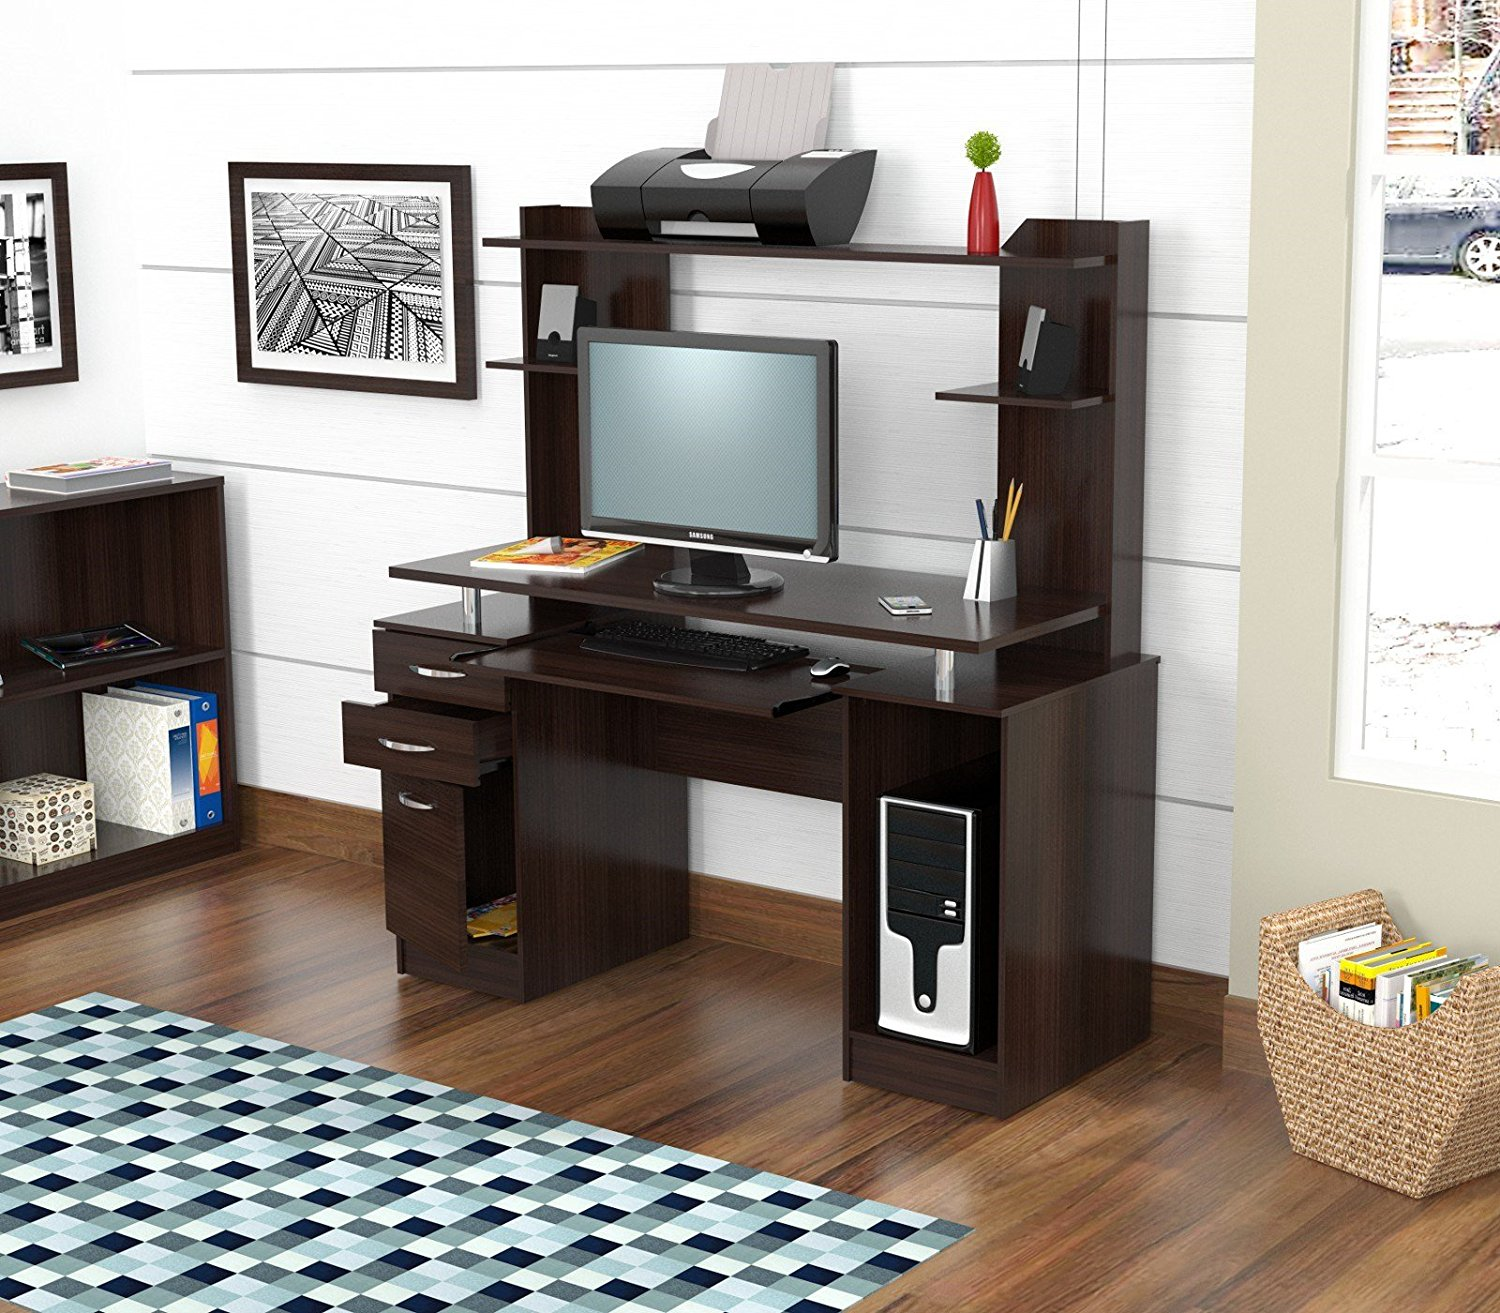 "53.3"" Espresso Melamine and Engineered Wood Computer Desk with Hutch"